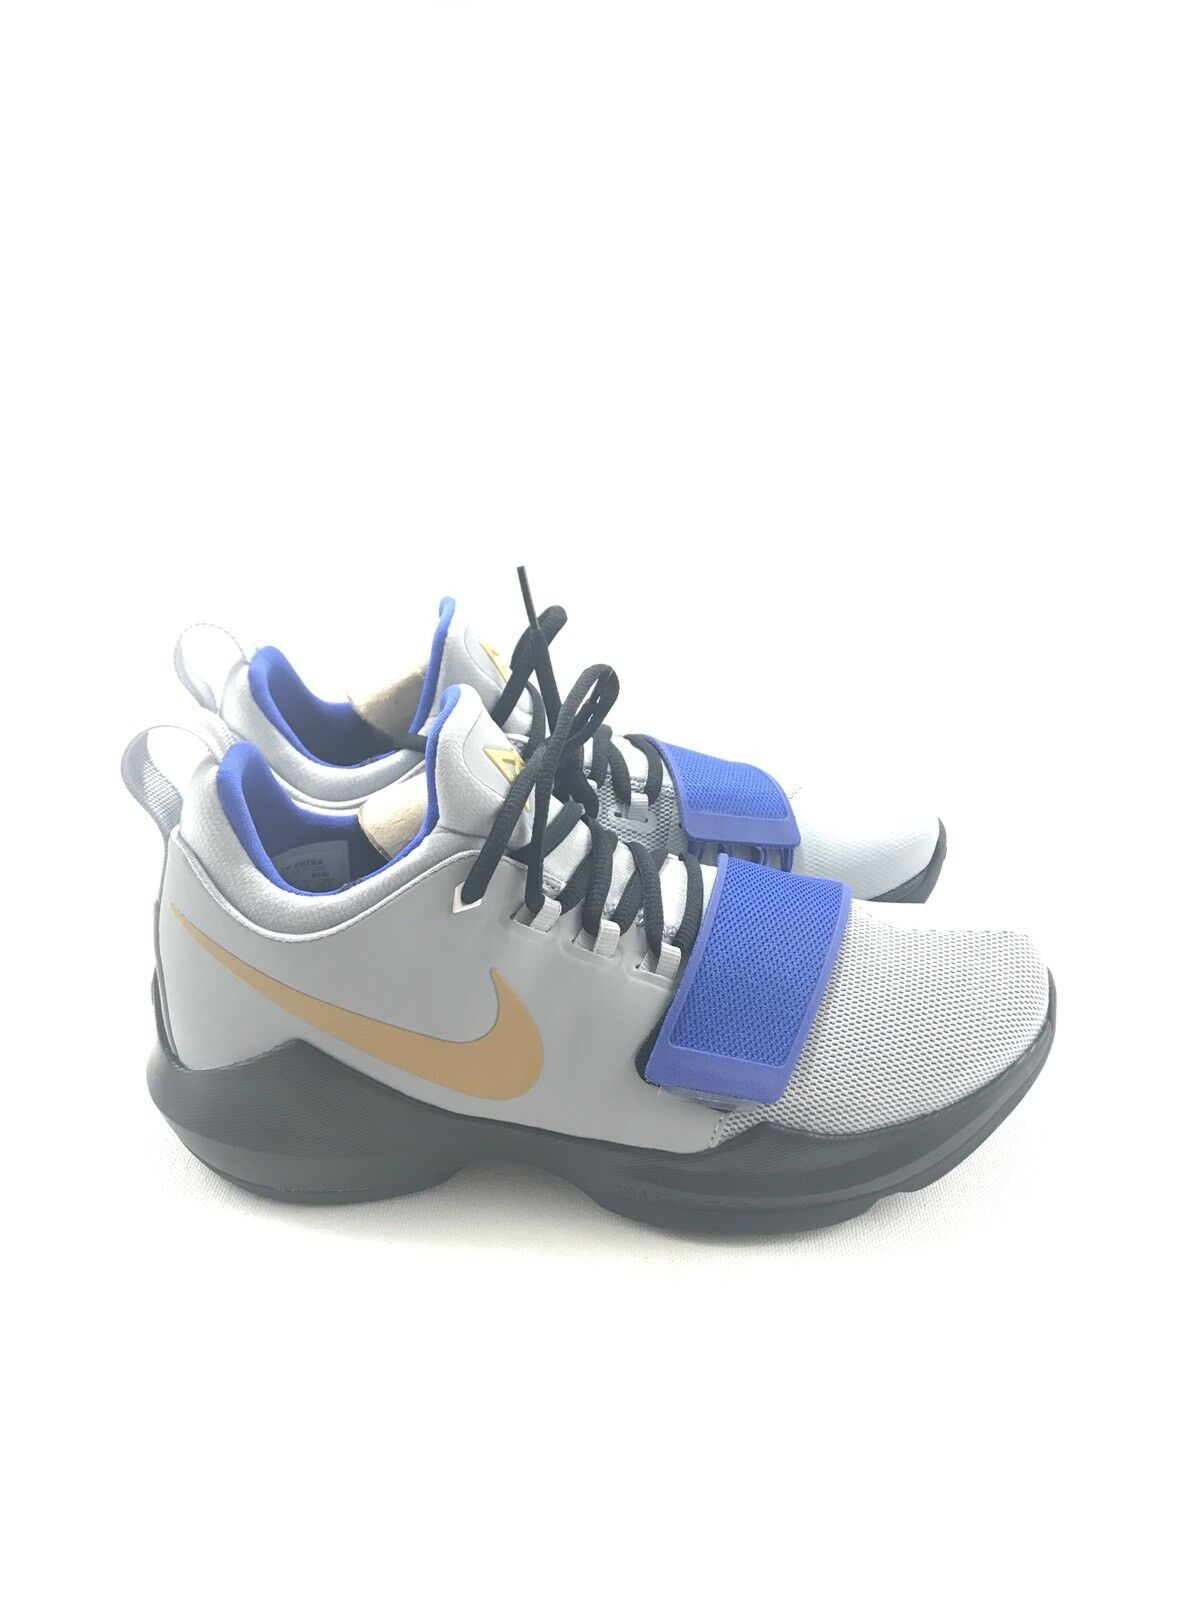 Nike Mens ID 1 PG 1 Comfortable Great discount